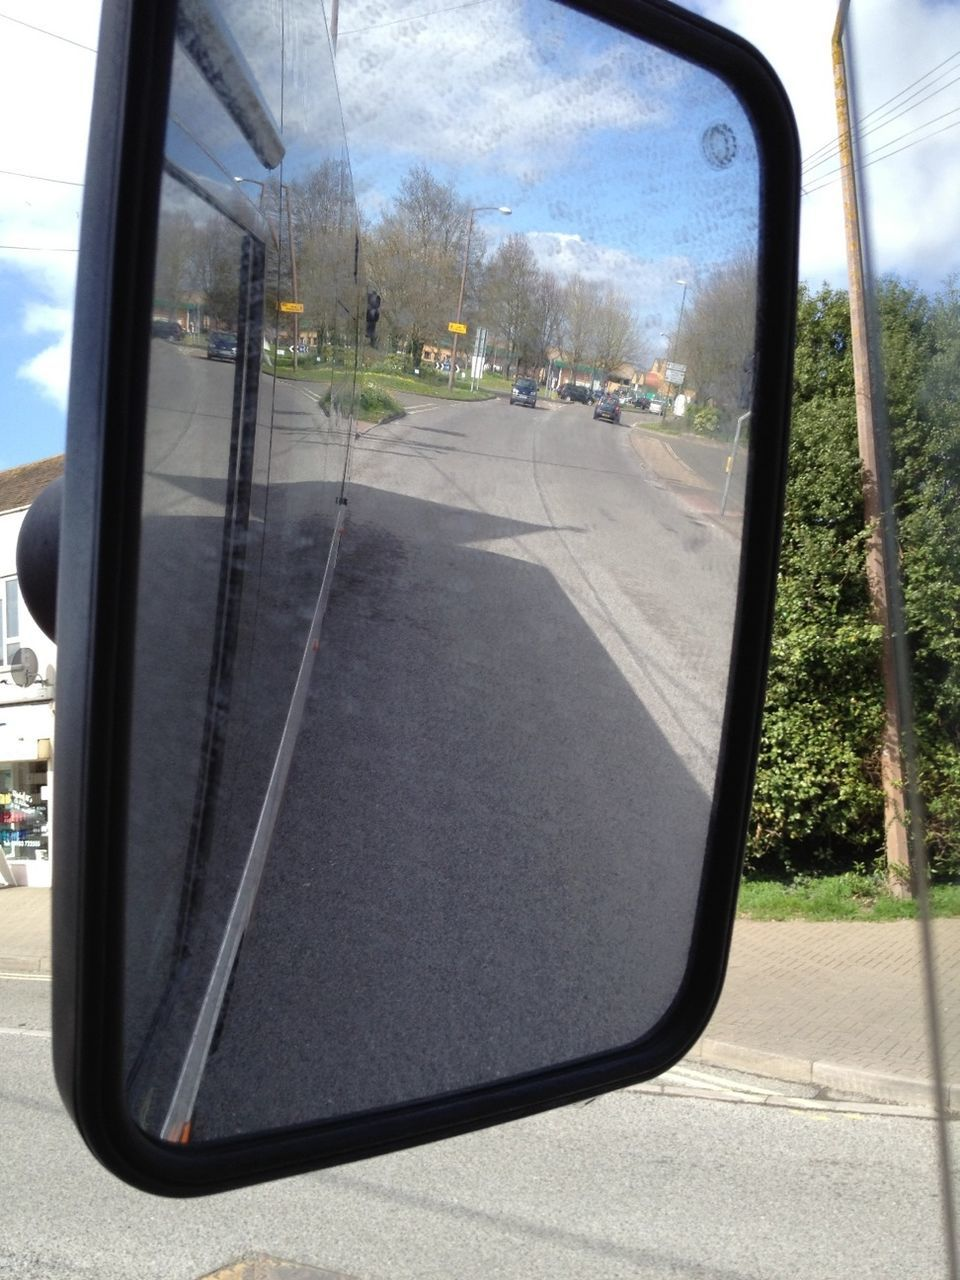 transportation, side-view mirror, vehicle interior, mode of transport, road, day, land vehicle, car, reflection, window, sky, tree, no people, vehicle mirror, sunlight, outdoors, nature